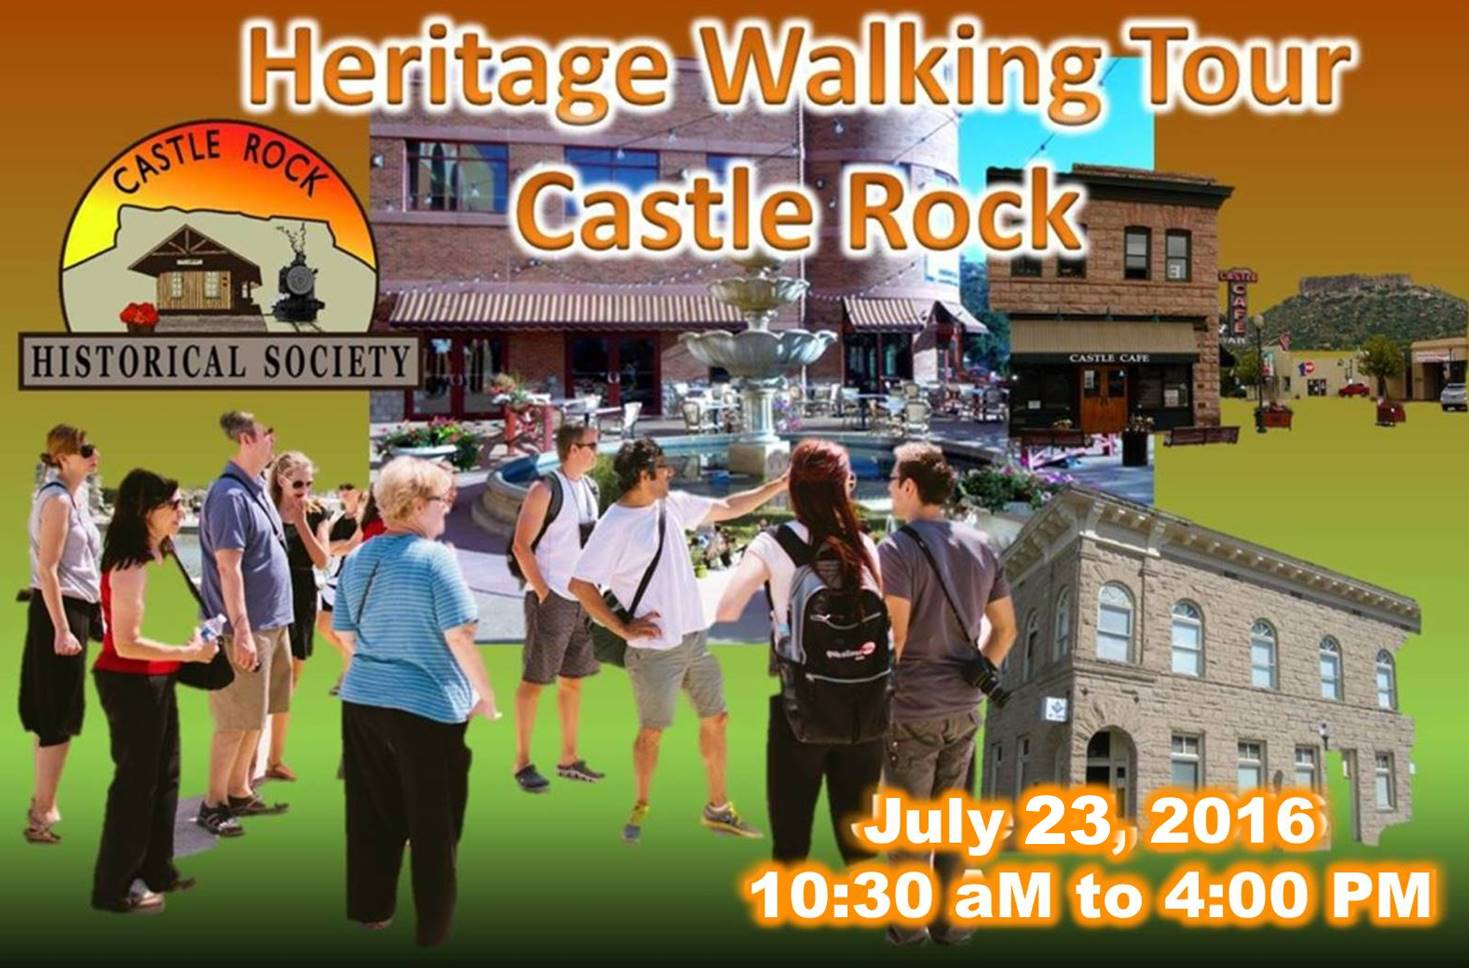 Castle Rock Walk July 23, 2016